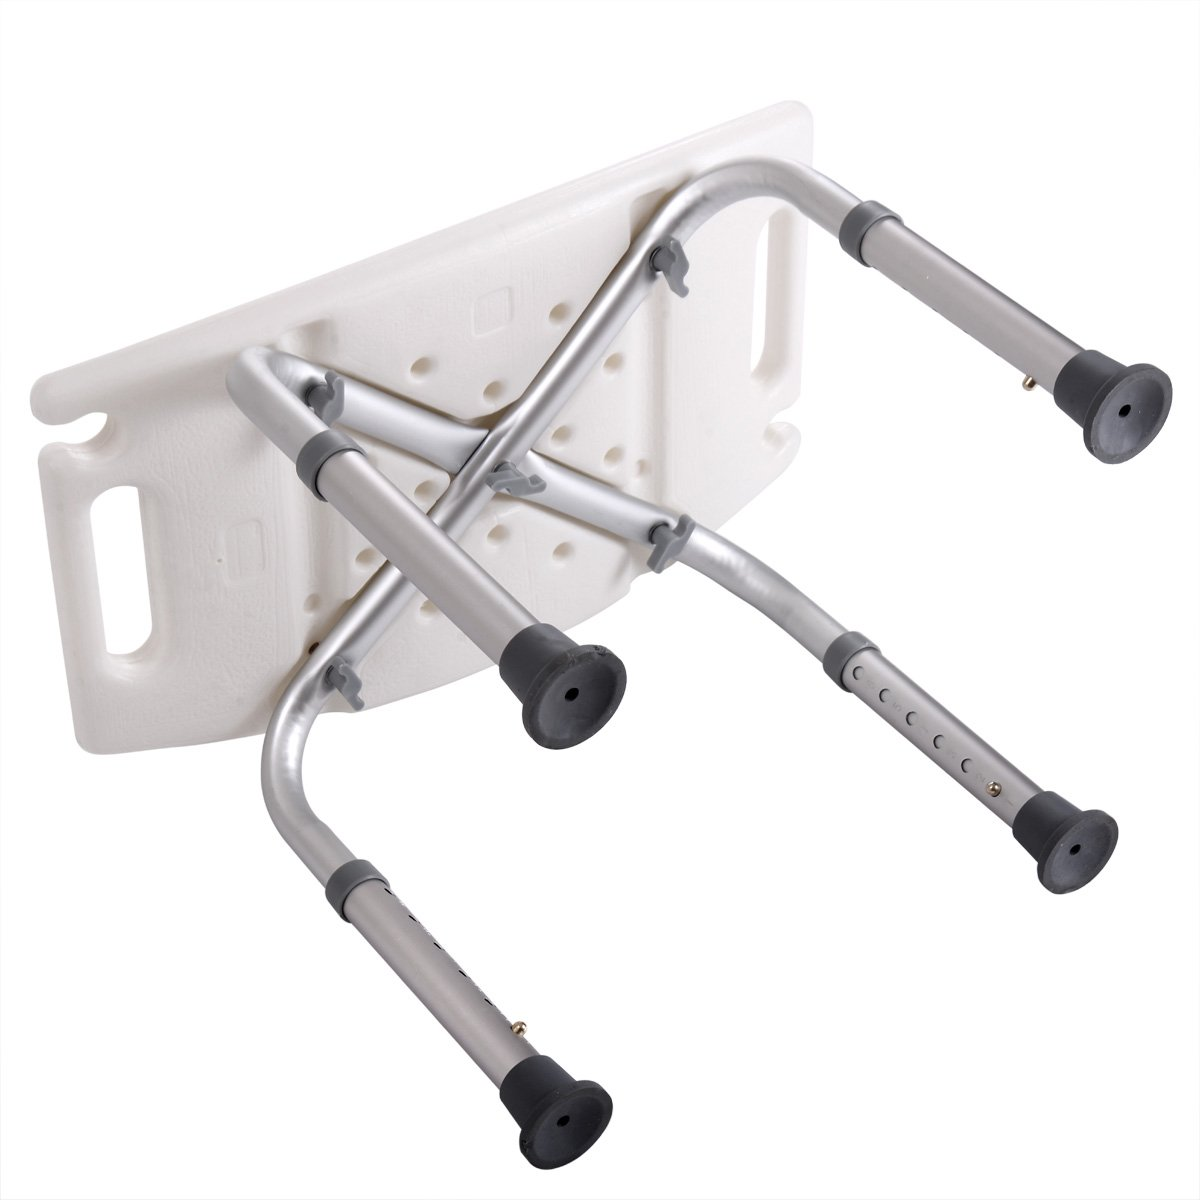 Tobbi Medical Tool-Free Assembly Adjustable Shower Stool Tub Chair W/Anti-Slip Rubber Tips by Tobbi (Image #5)